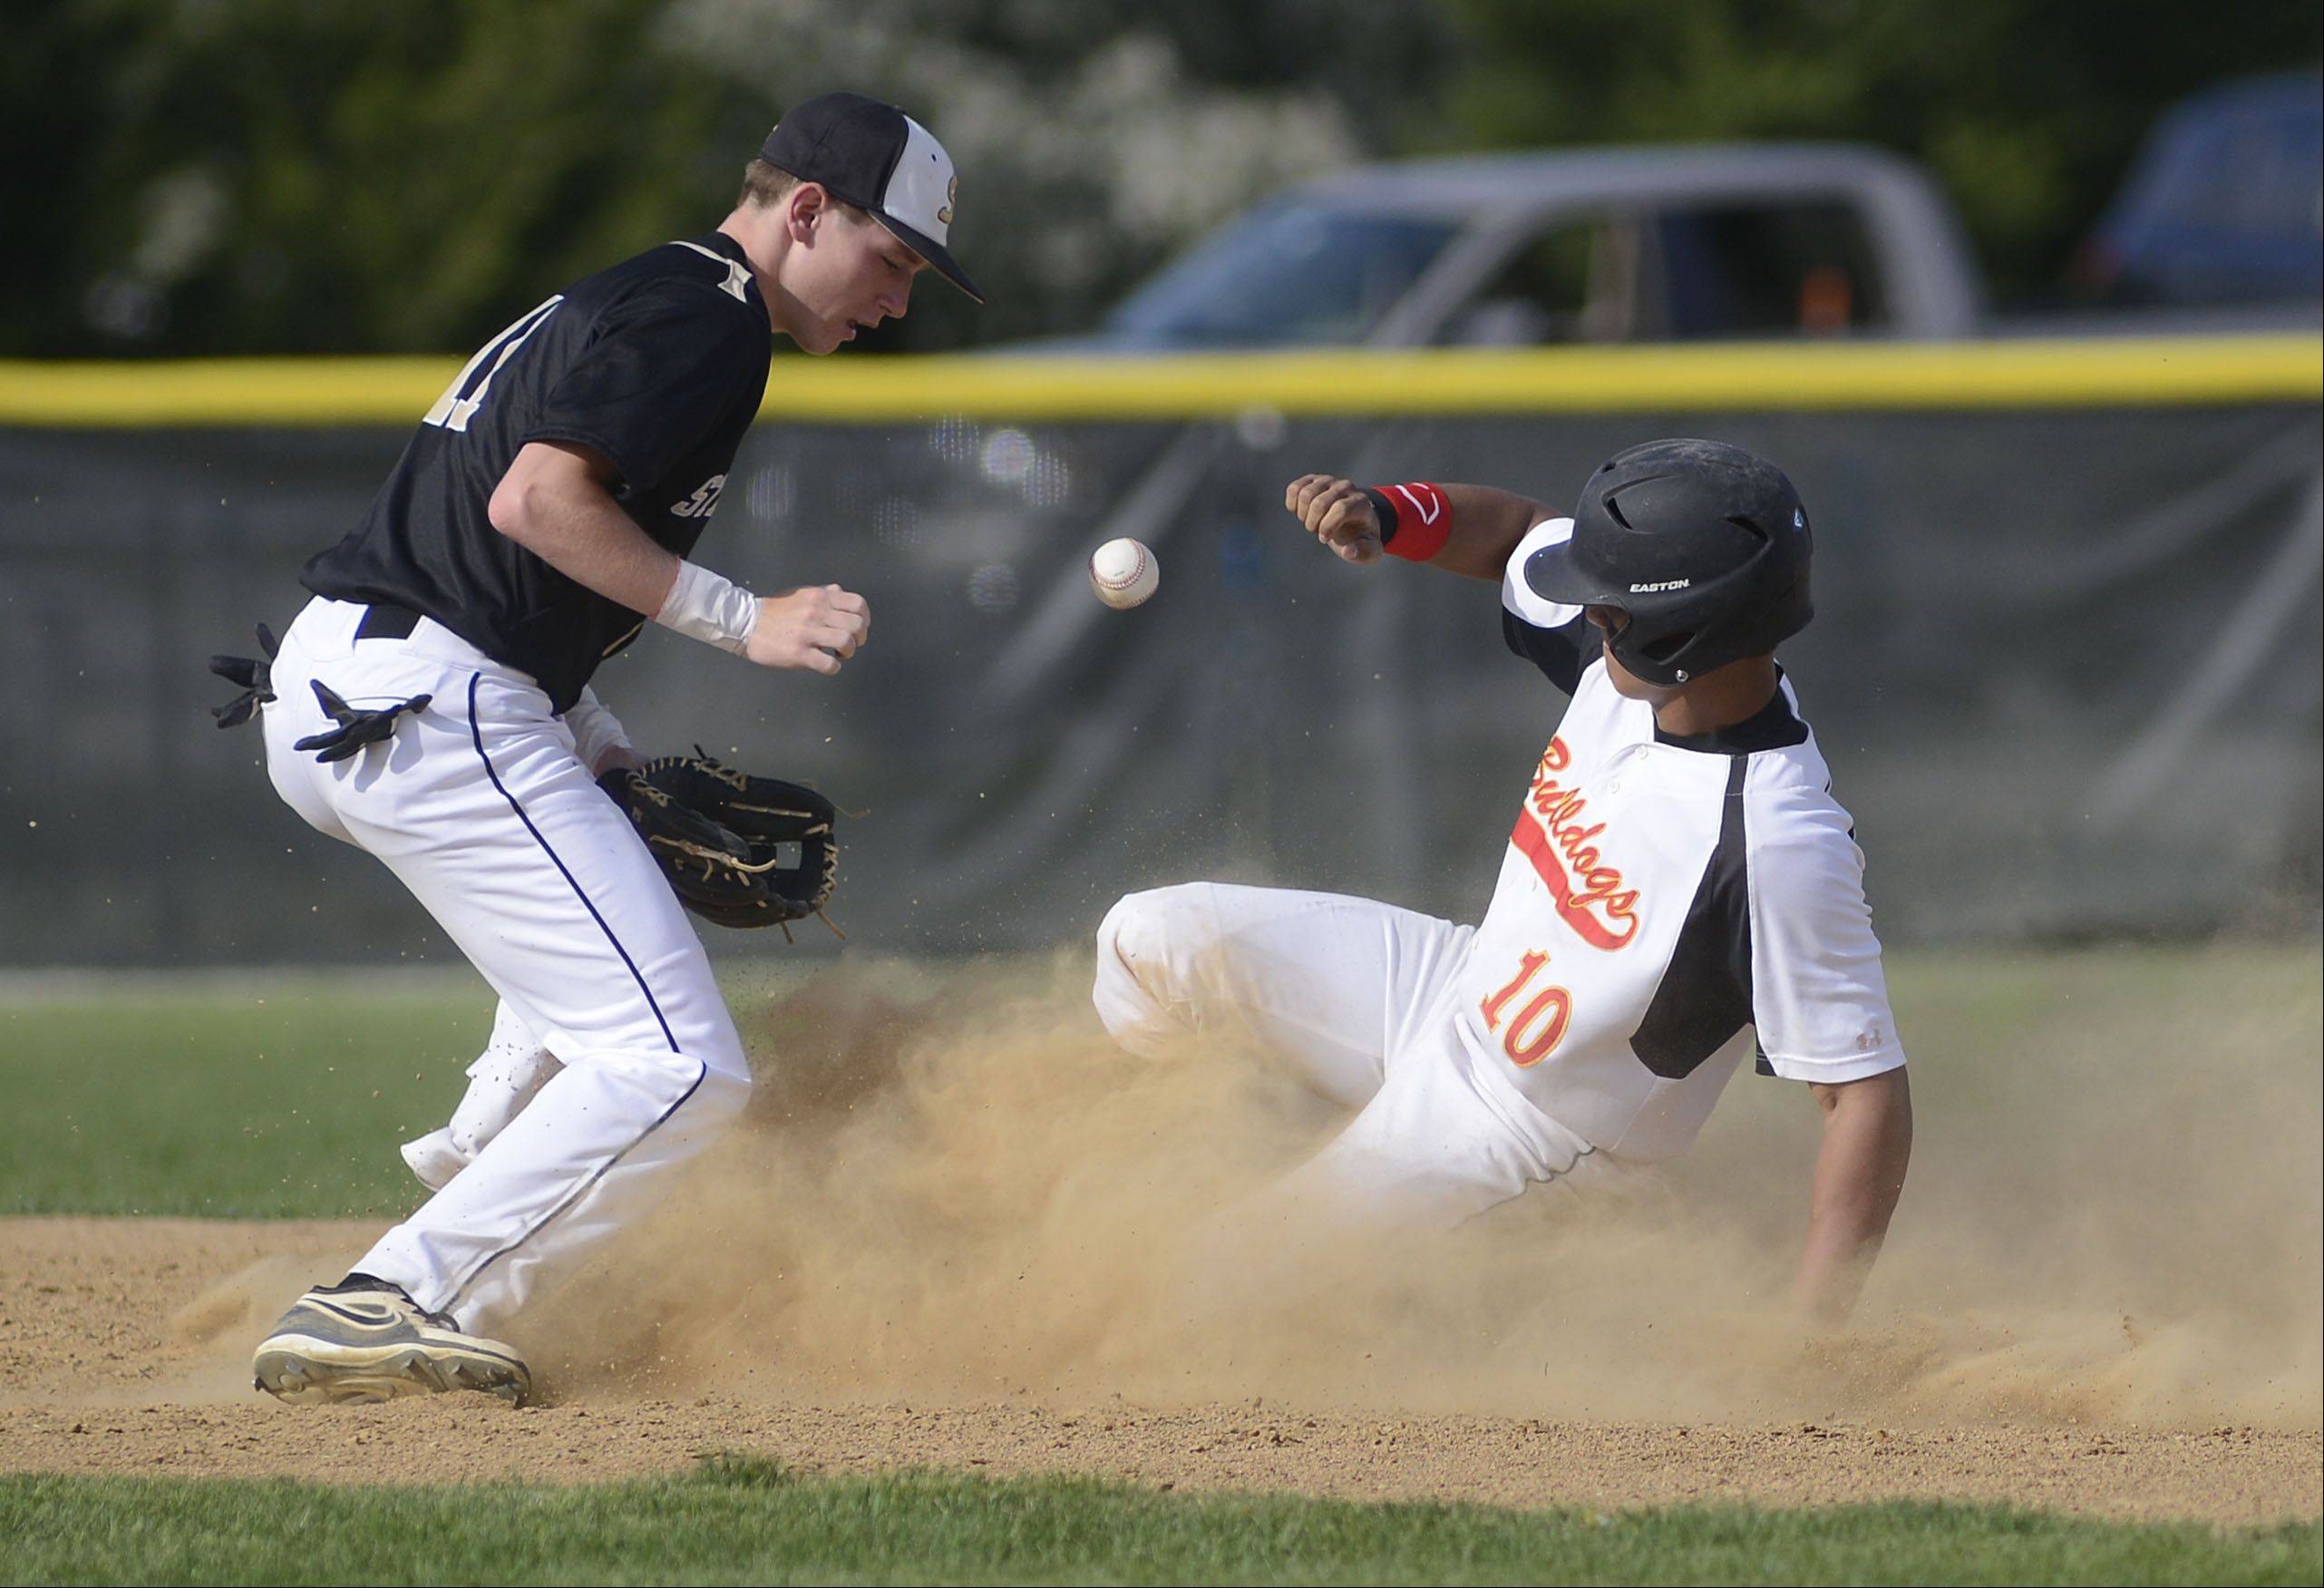 Batavia's Laren Eustace is safe on second base as the ball pops out of Streamwood's Michael Smith's glove in the first inning on Wednesday, May 15.